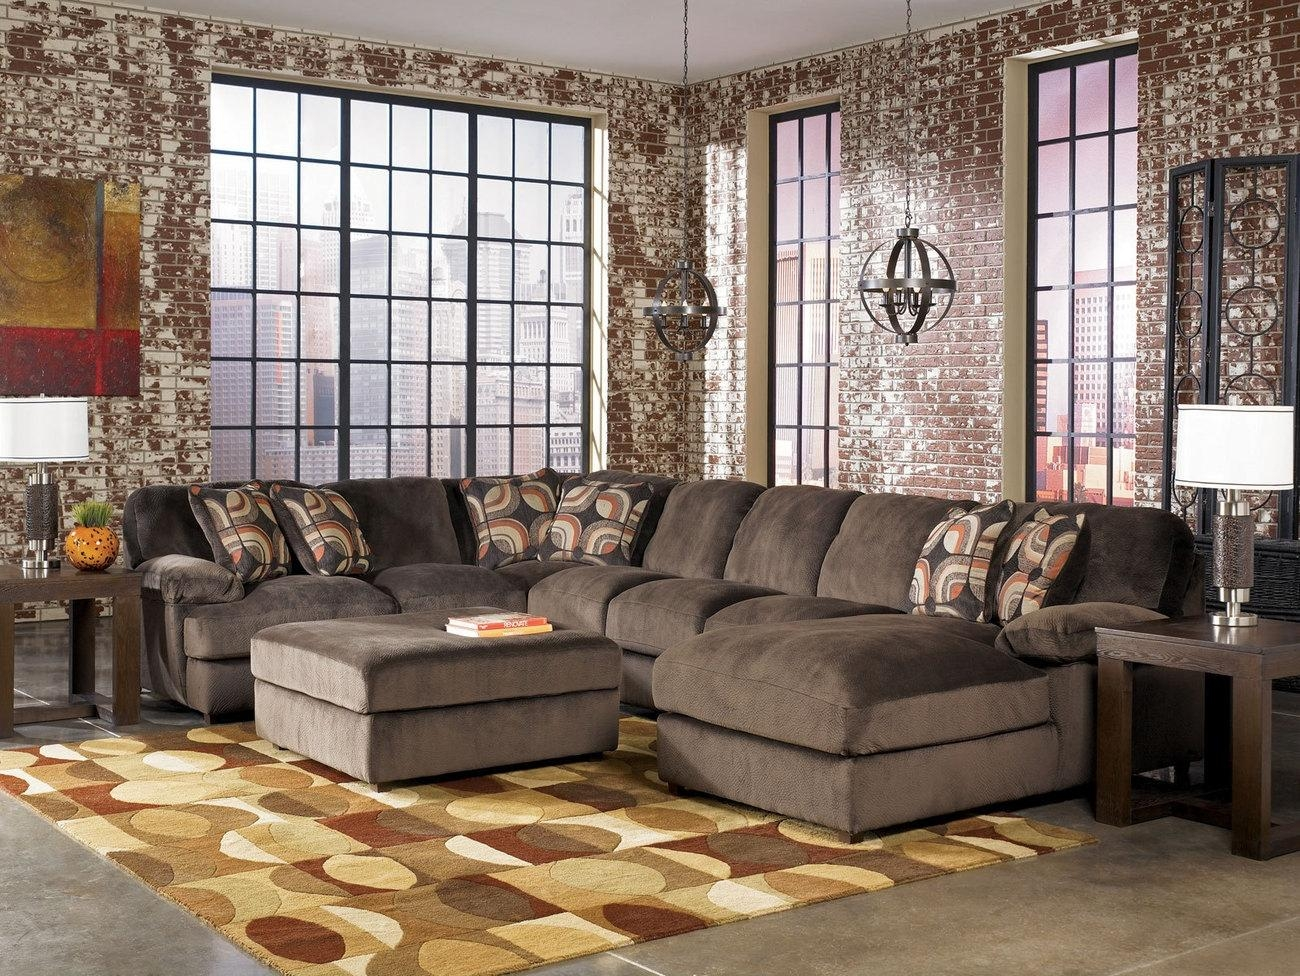 Sofas Center : Contemporary Style Living Room Oversized Sectional Pertaining To Oversized Sectional Sofa (Image 12 of 20)